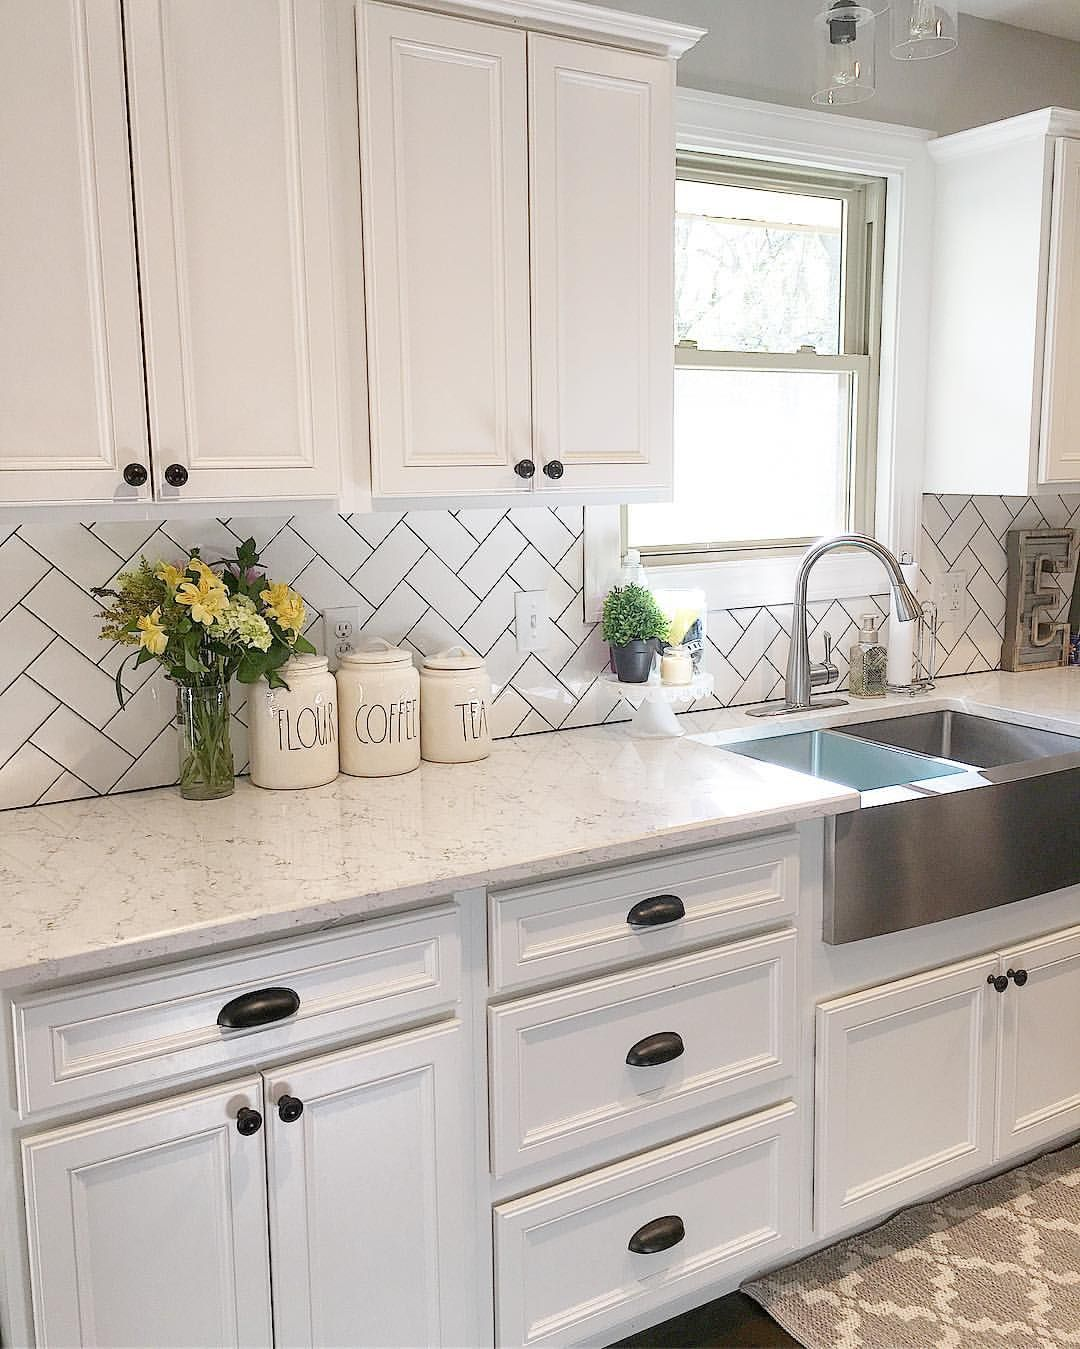 5 Tips On Buying Farmhouse Sink | Herringbone subway tile, Stainless ...